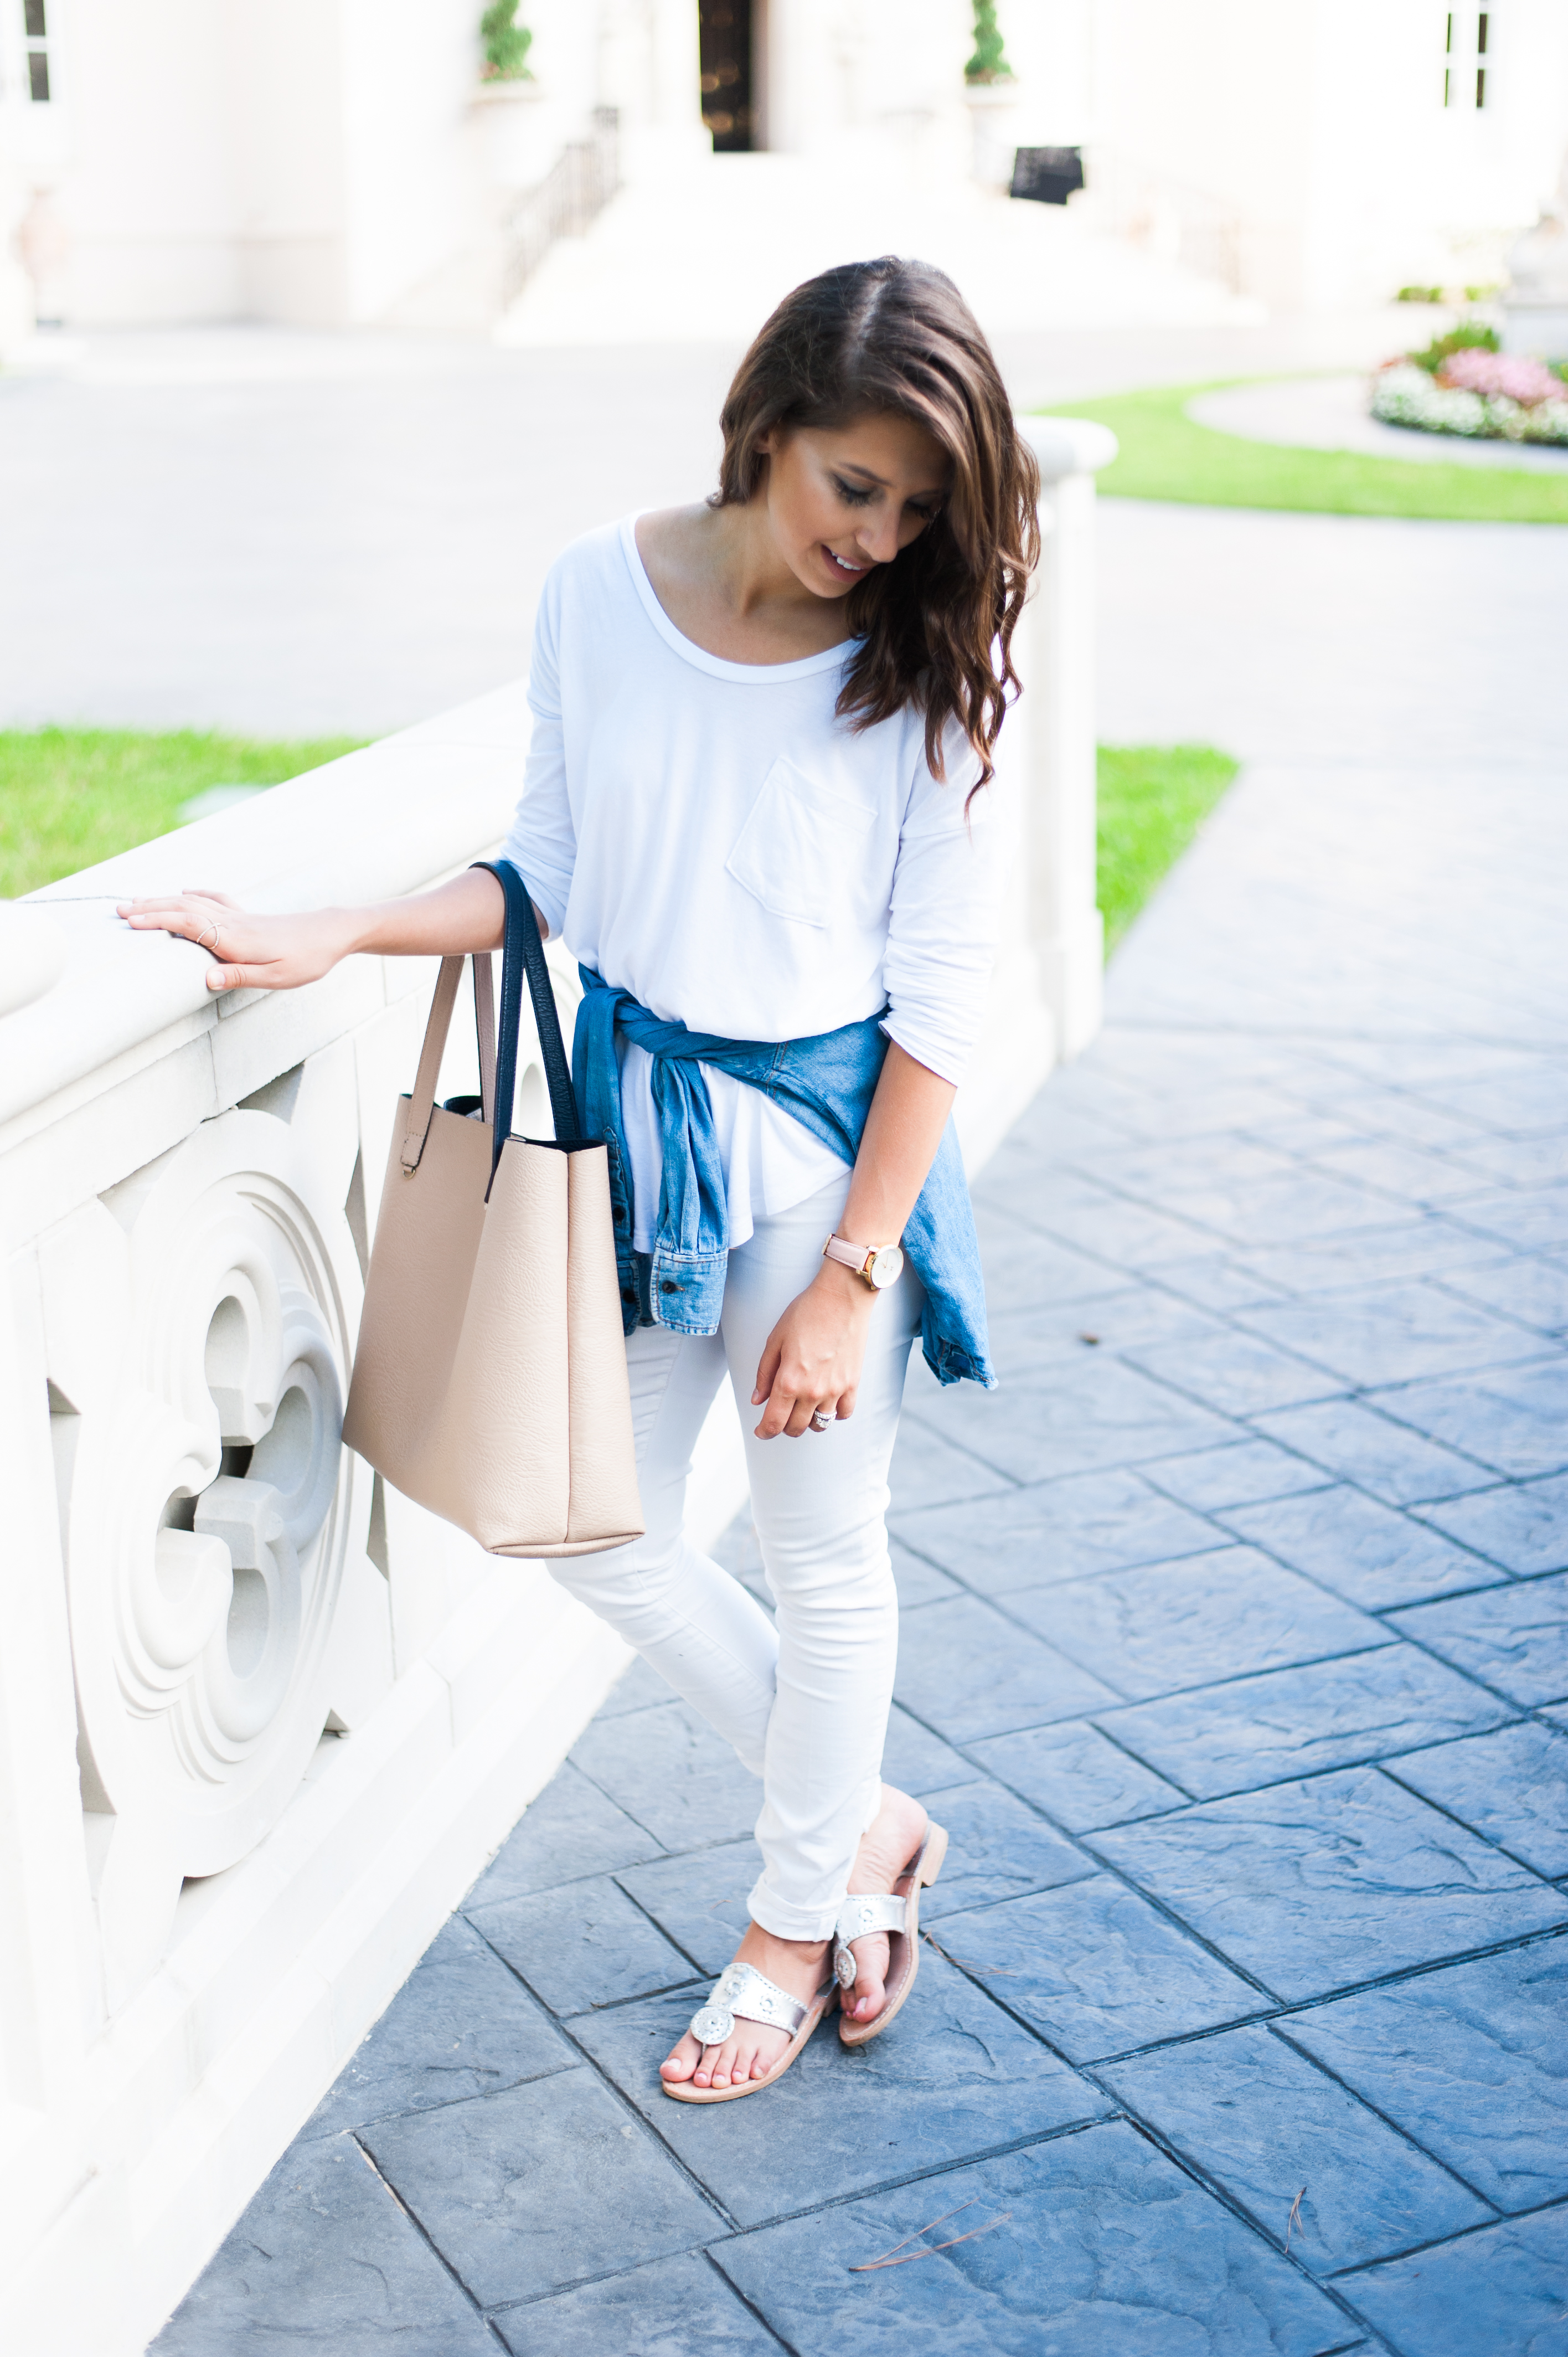 Dress Up Buttercup // A Houston-based fashion and inspiration blog developed to daily inspire your own personal style by Dede Raad | Casual Stroll